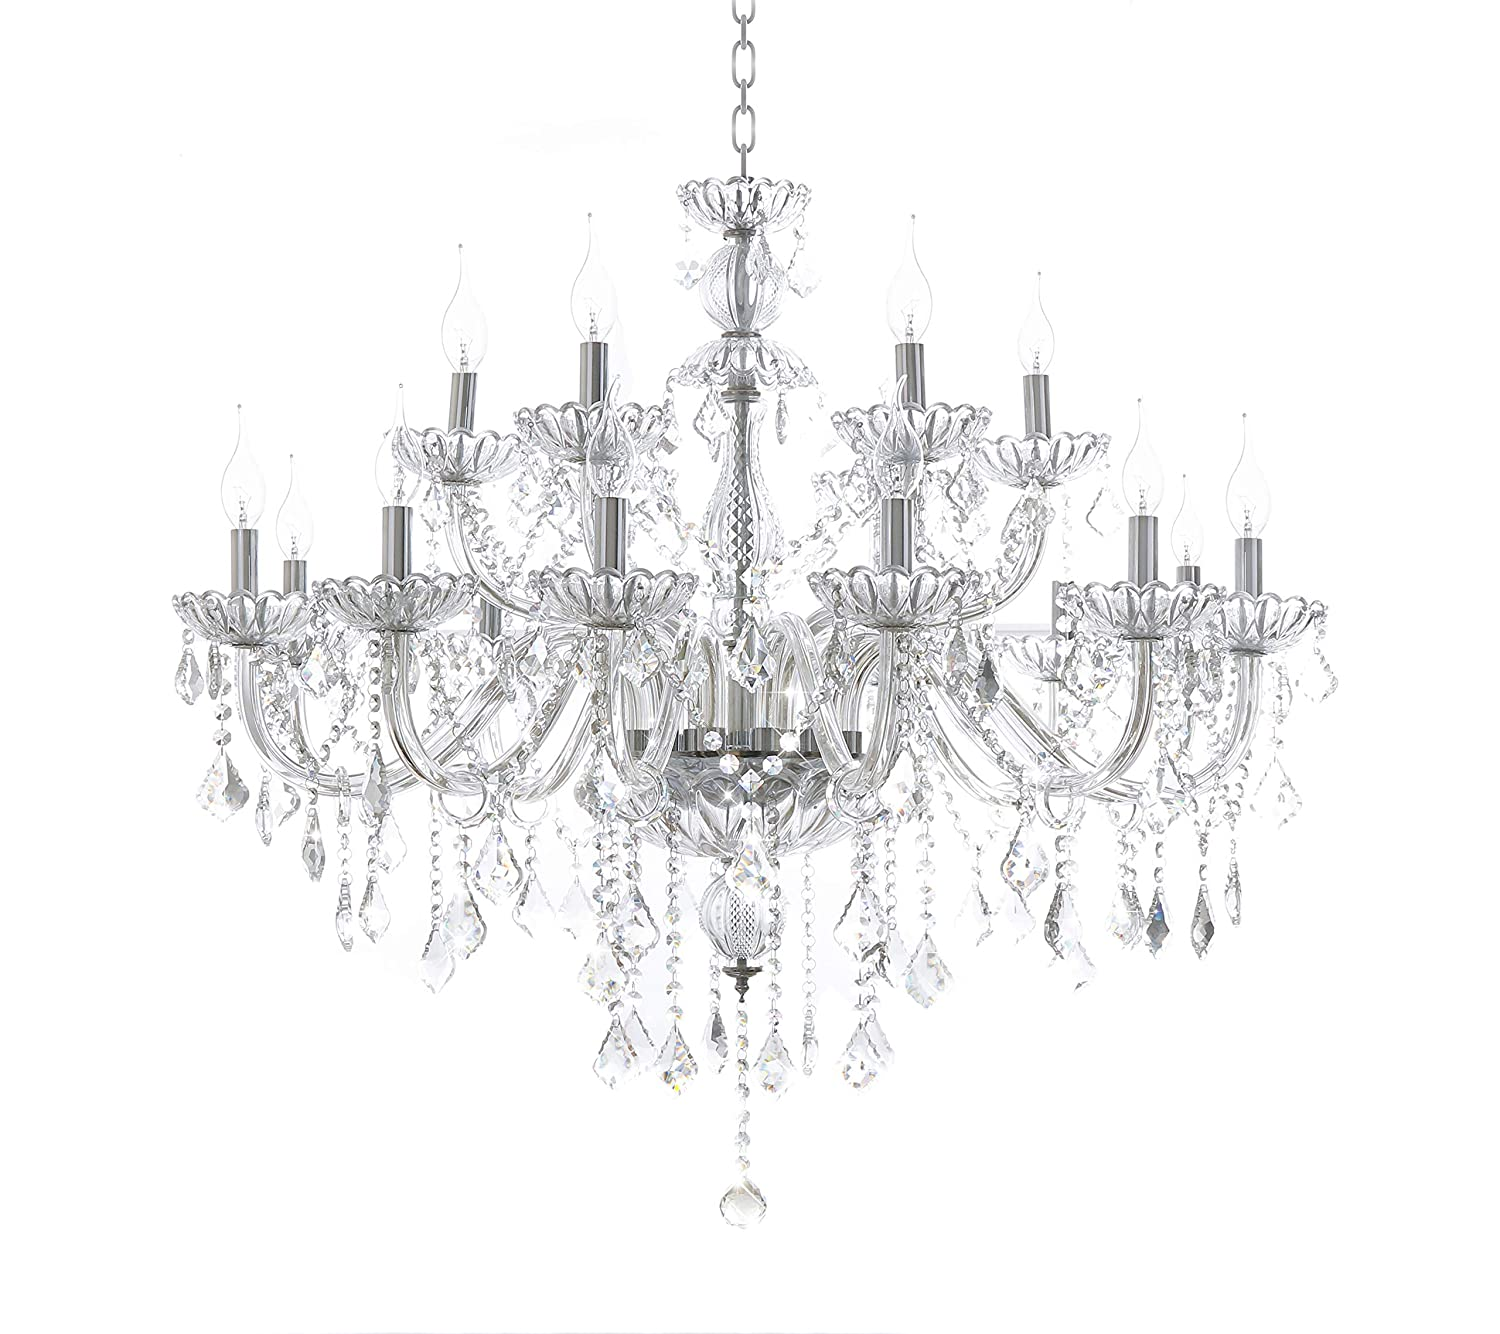 new concept b9f45 7ac9d Generic Luxury Pendant Lamp Crystals Chandelier 18 Lights Arms Lamp Color  Clear